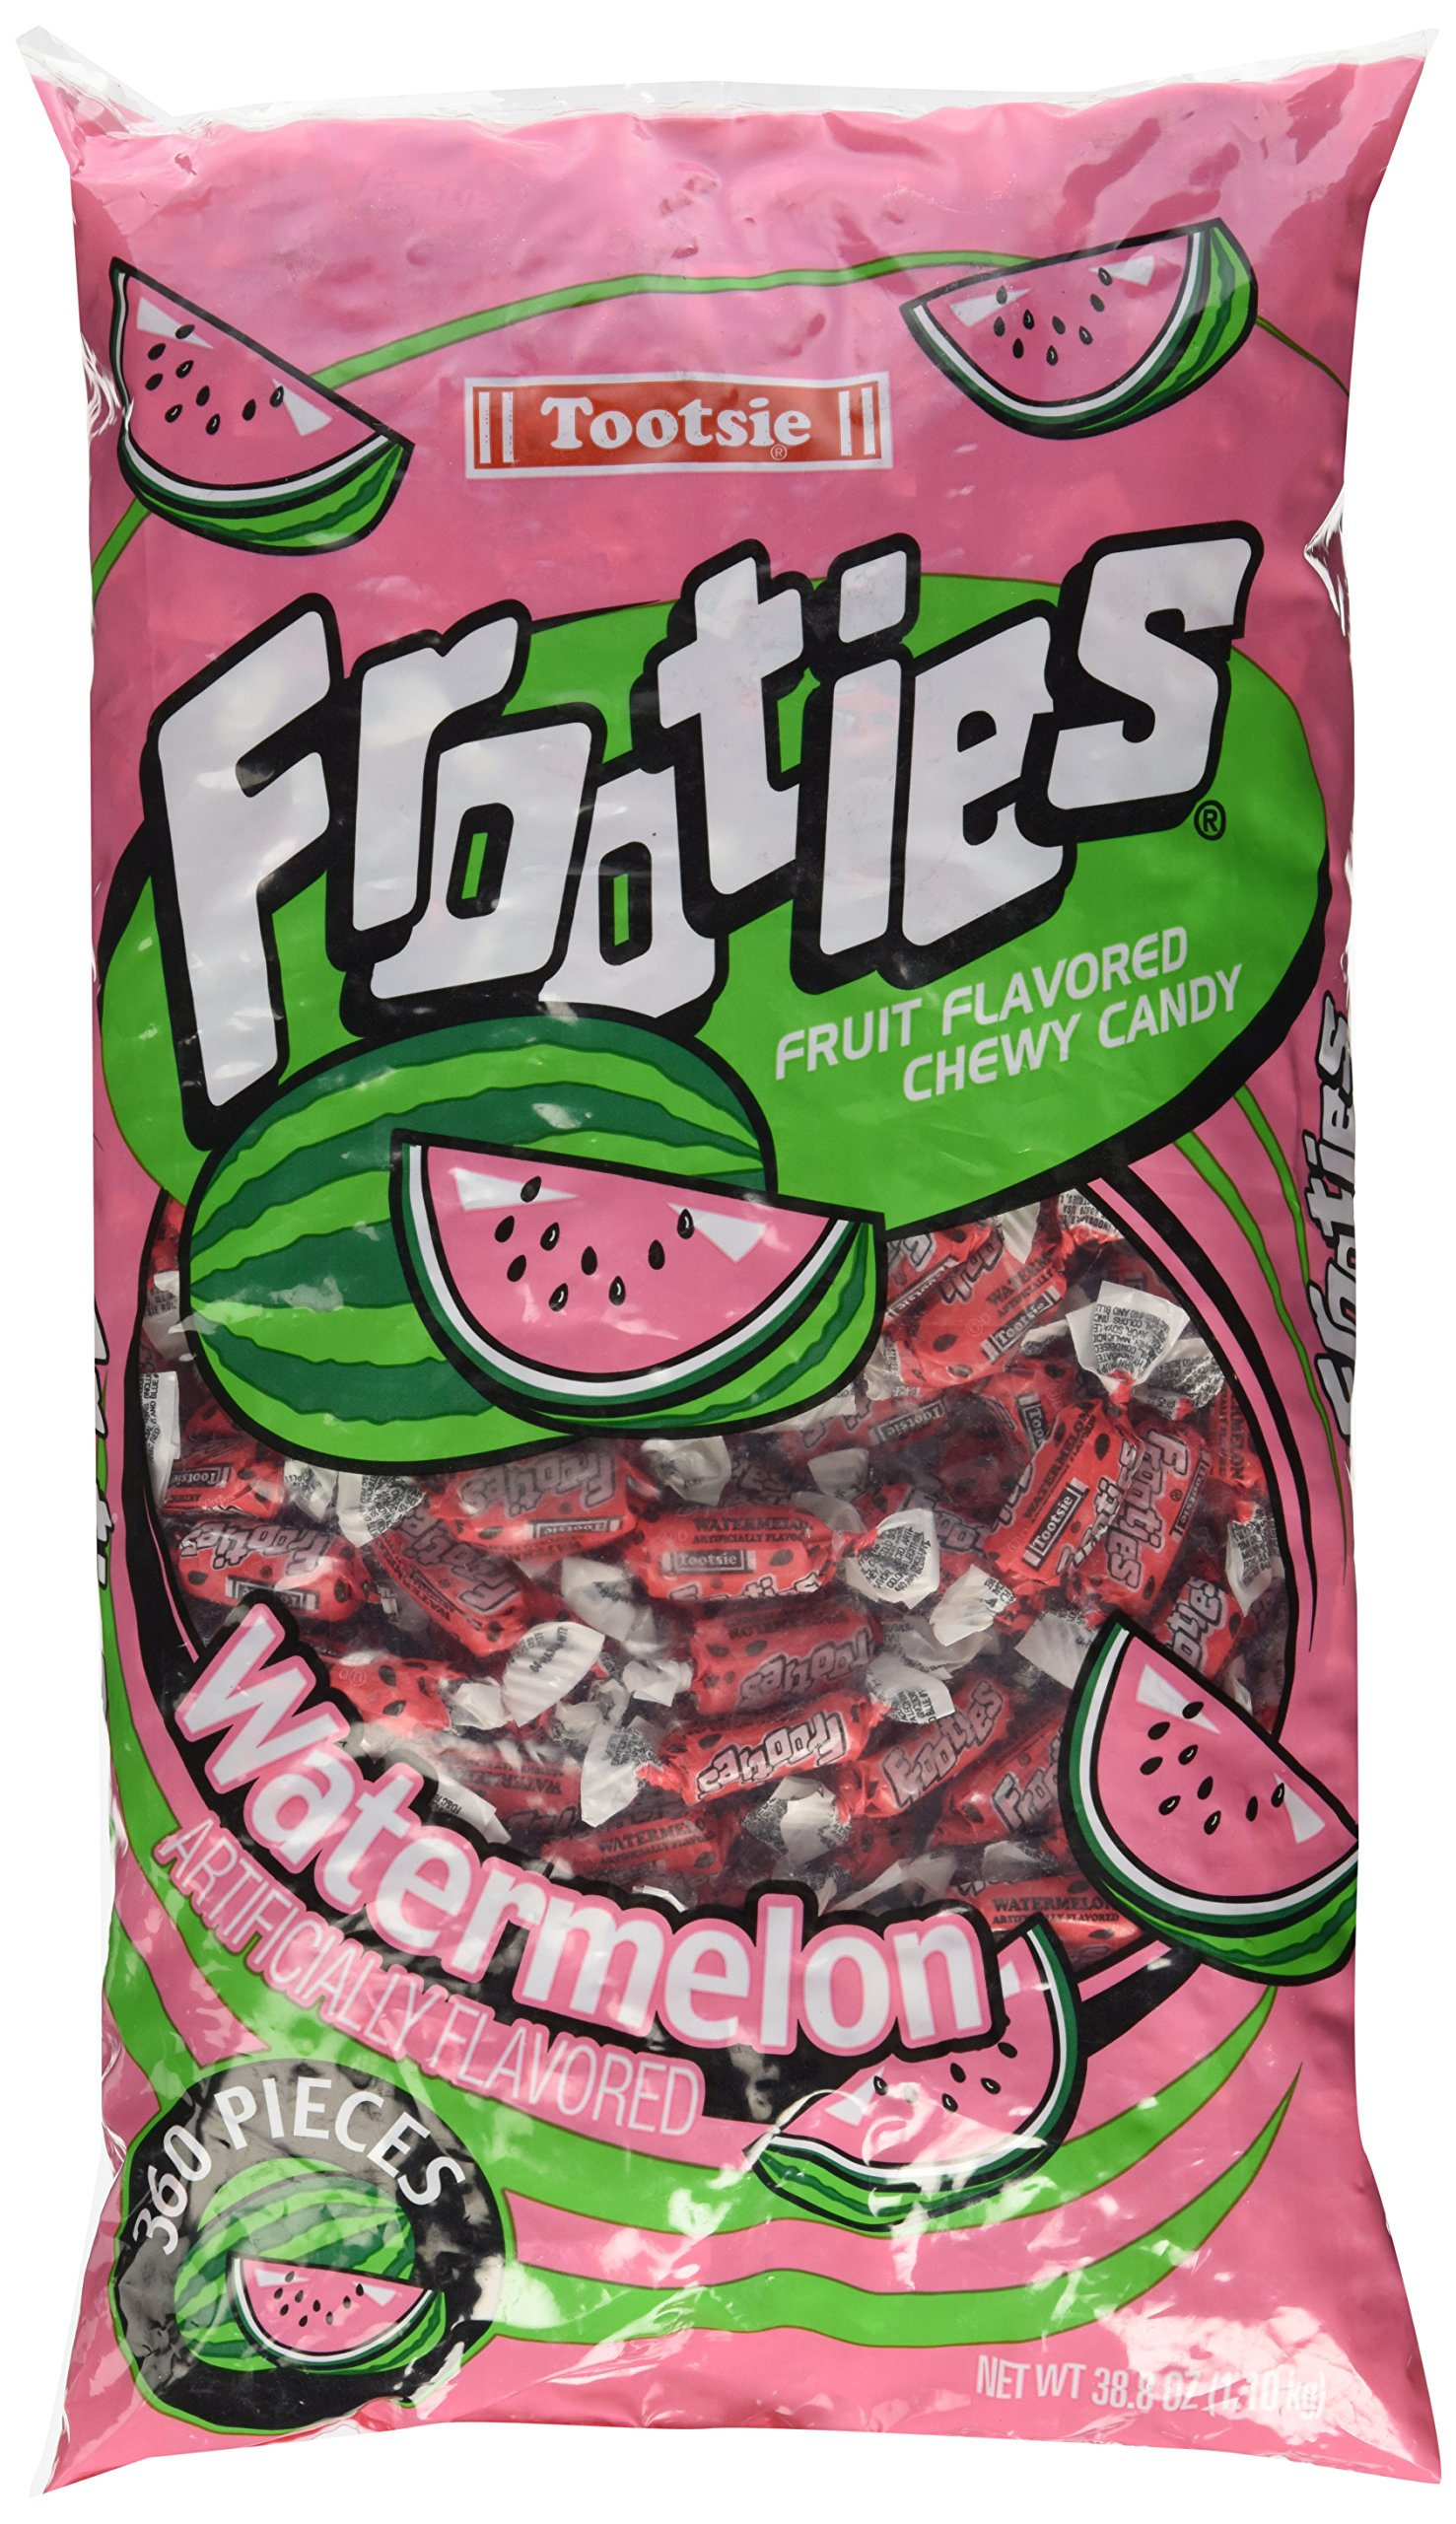 Watermelon Tootsie Roll Frooties Chewy Candy - 360-piece Bag (Gluten Free ~ Peanut Free)